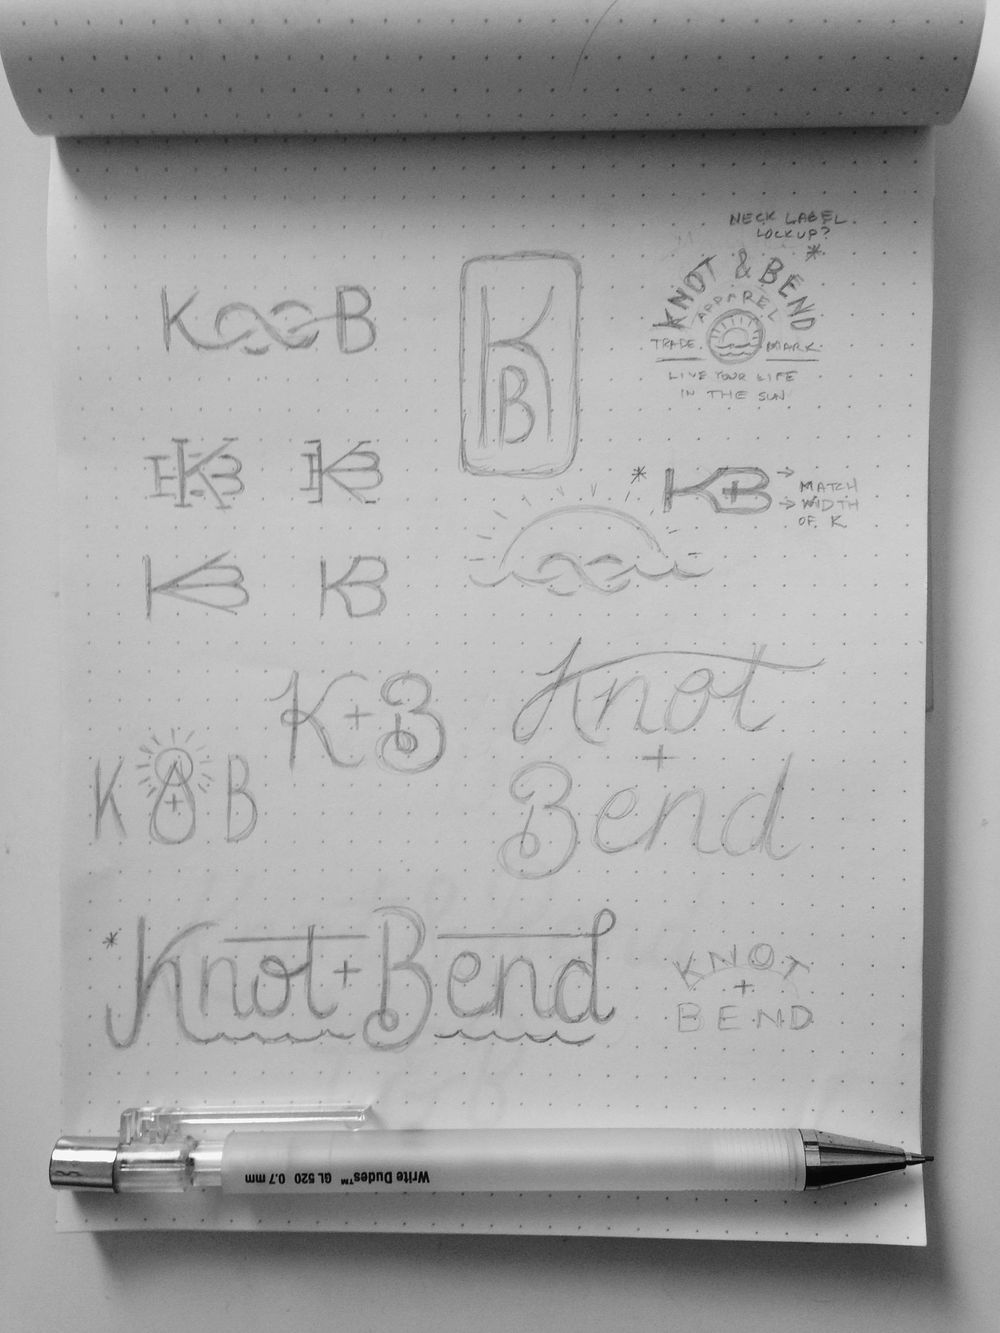 Knot+Bend - image 2 - student project